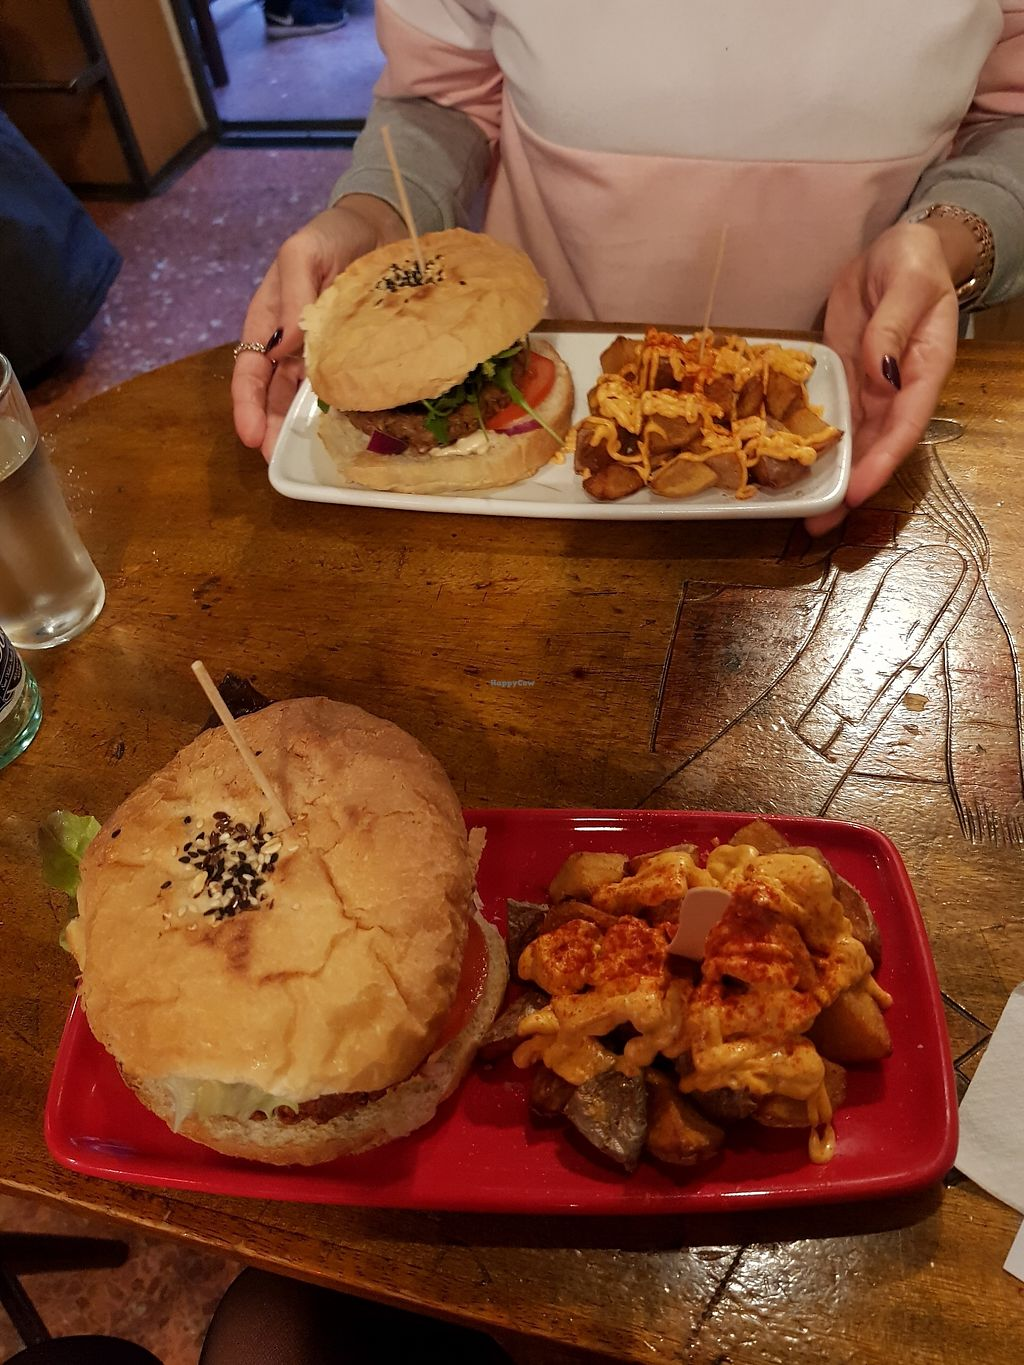 """Photo of CatBar  by <a href=""""/members/profile/rachie18"""">rachie18</a> <br/>Fab burger! <br/> February 9, 2018  - <a href='/contact/abuse/image/21348/356988'>Report</a>"""